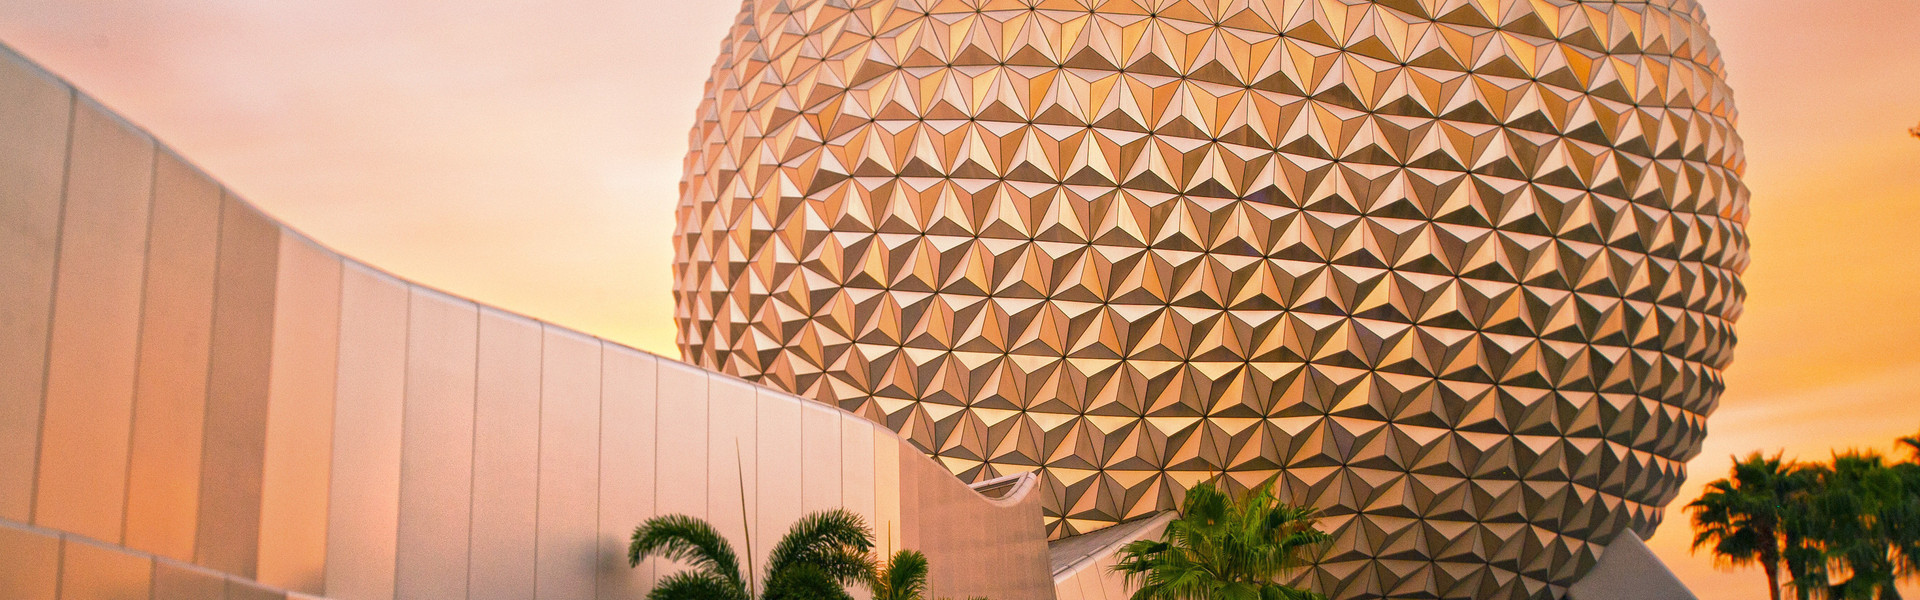 Hotel For Epcot International Festival of the Arts